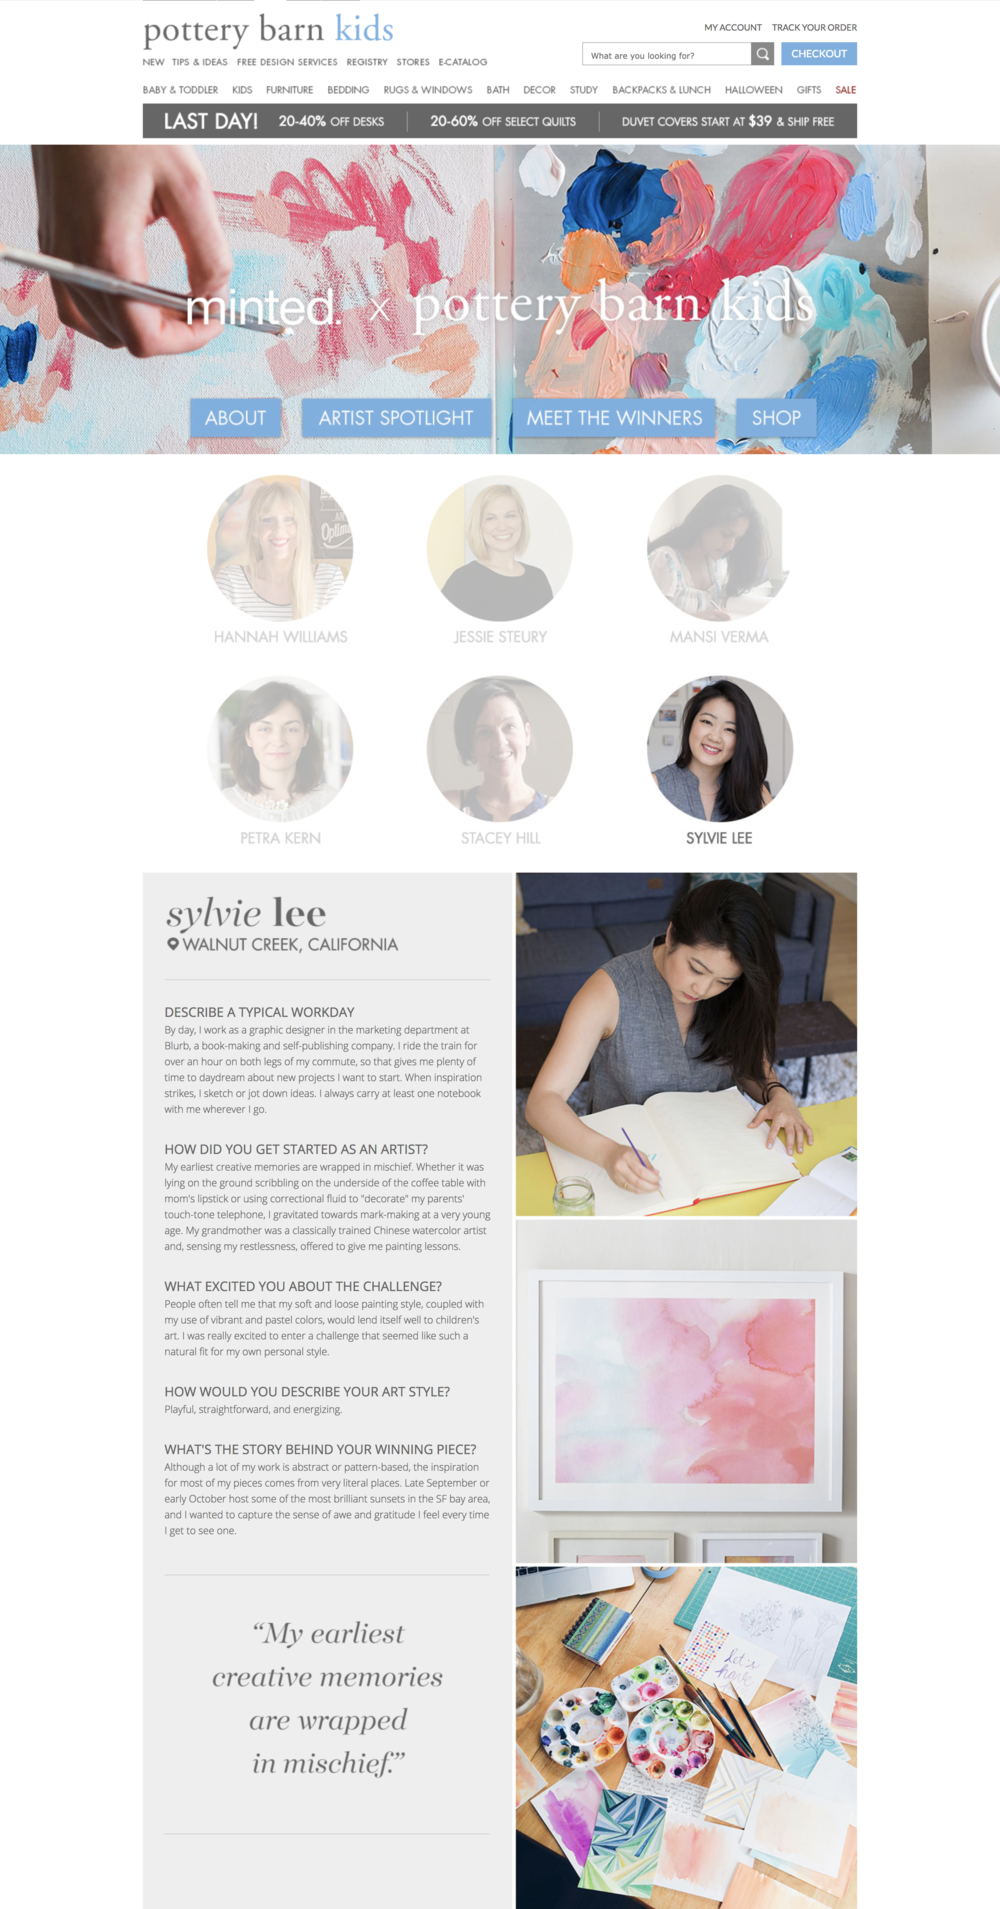 screencapture-web-archive-org-web-20160914205502-http-www-potterybarnkids-com-pages-minted-spotlight-html-2019-01-03-23_28_01 copy 2.png